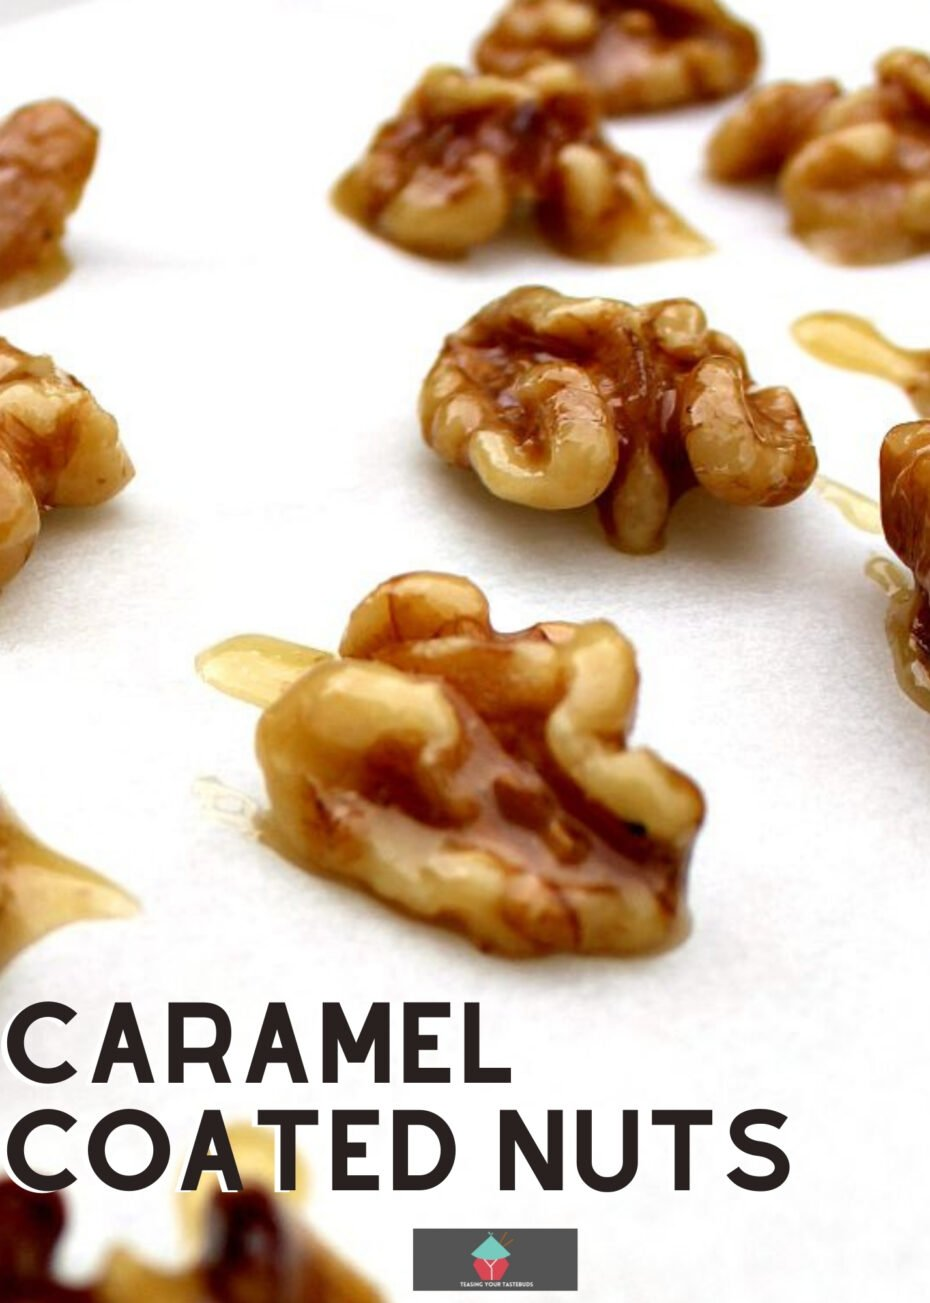 Caramel Coated Nuts! These nuts are absolutely delicious on their own as a snack, or you can use them in cakes, desserts, apple pies, the sky's the limit! Easy to make and flexible for you to choose your favorite nuts.